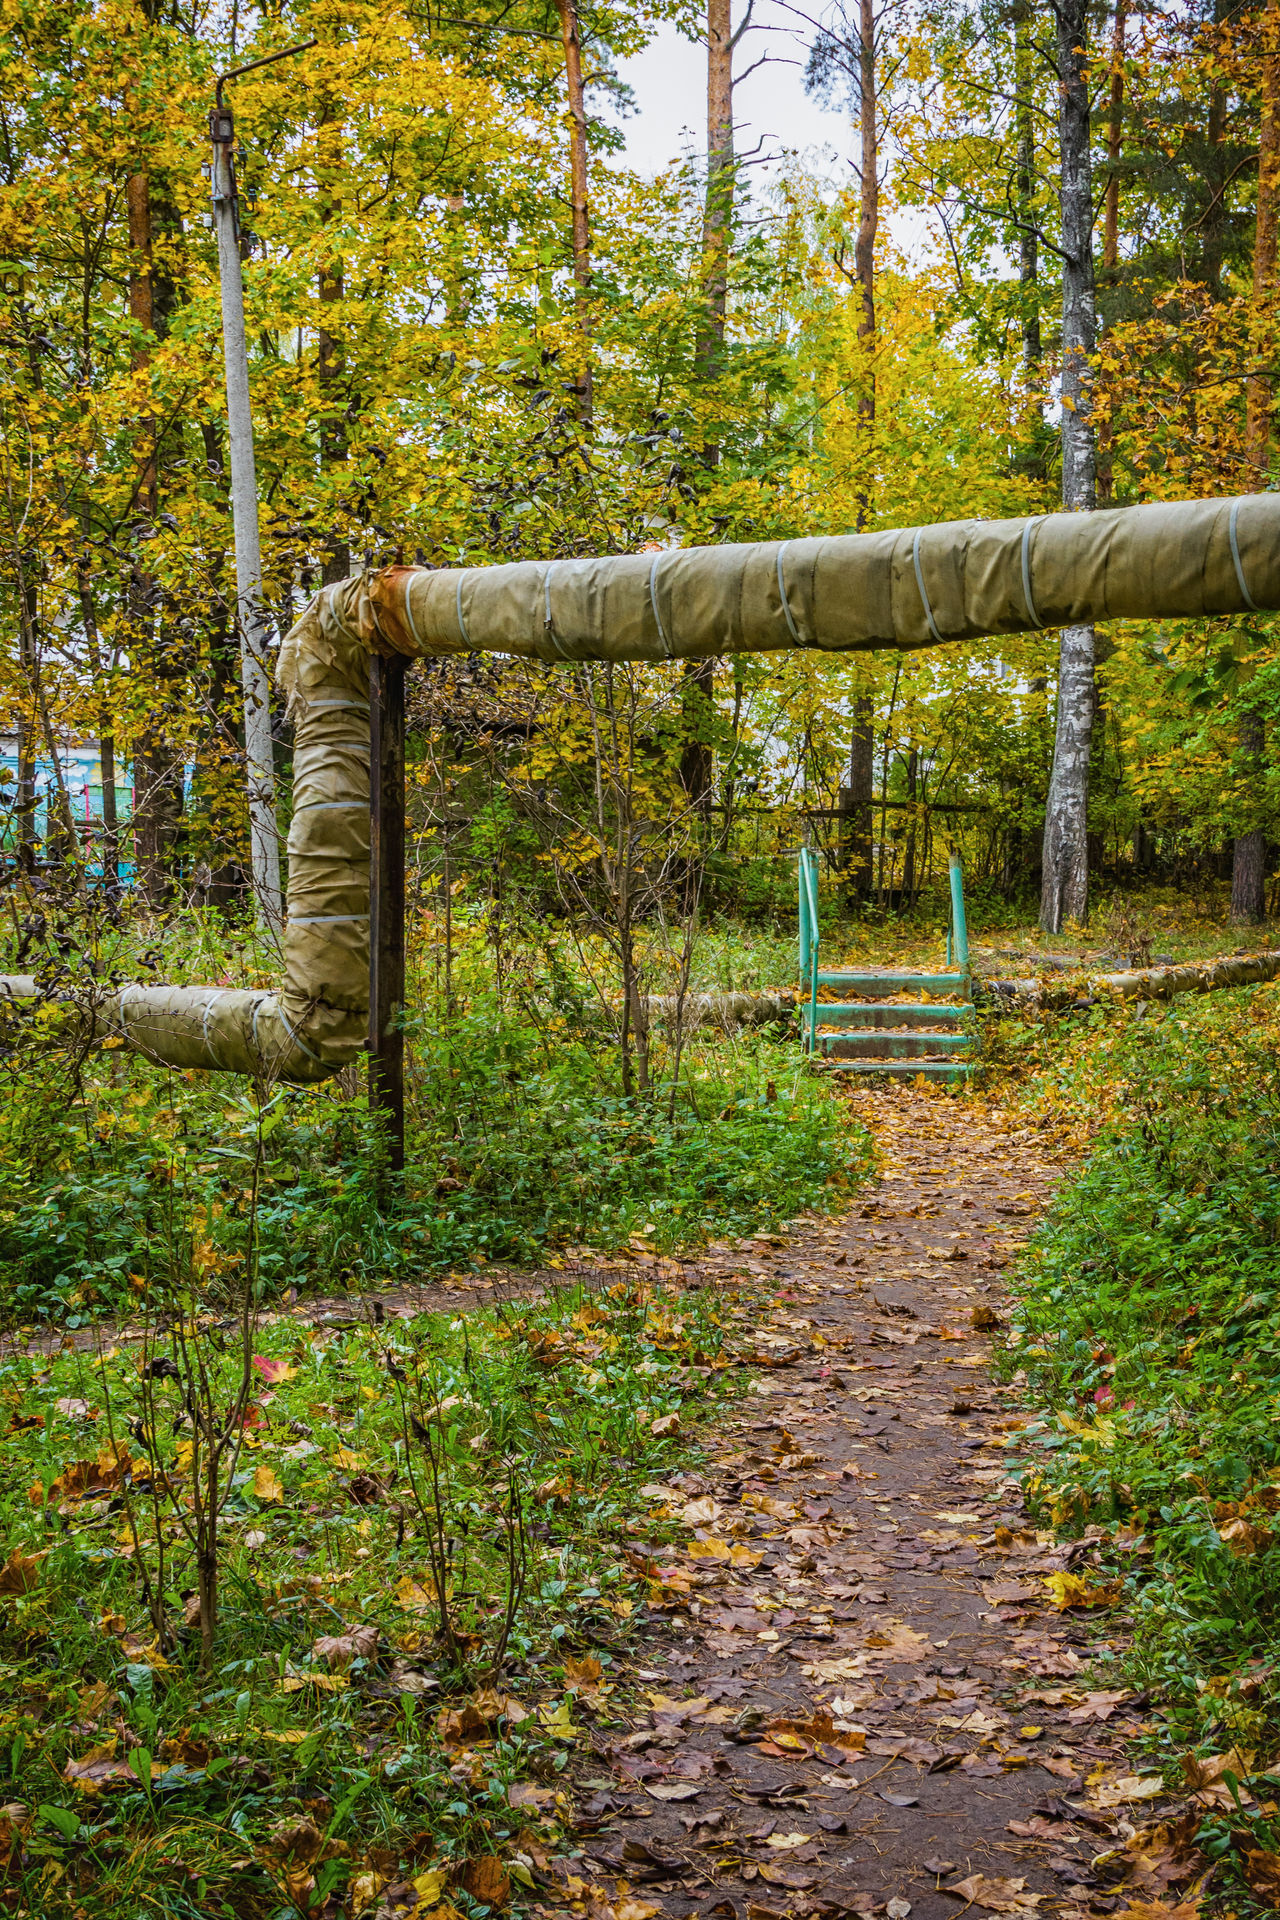 The path in the park, under the pipes Autumn Green Color Landscape Nature No People Outdoors Park Path Pipes Playground Russia Tree Trees Walking Yellow Color